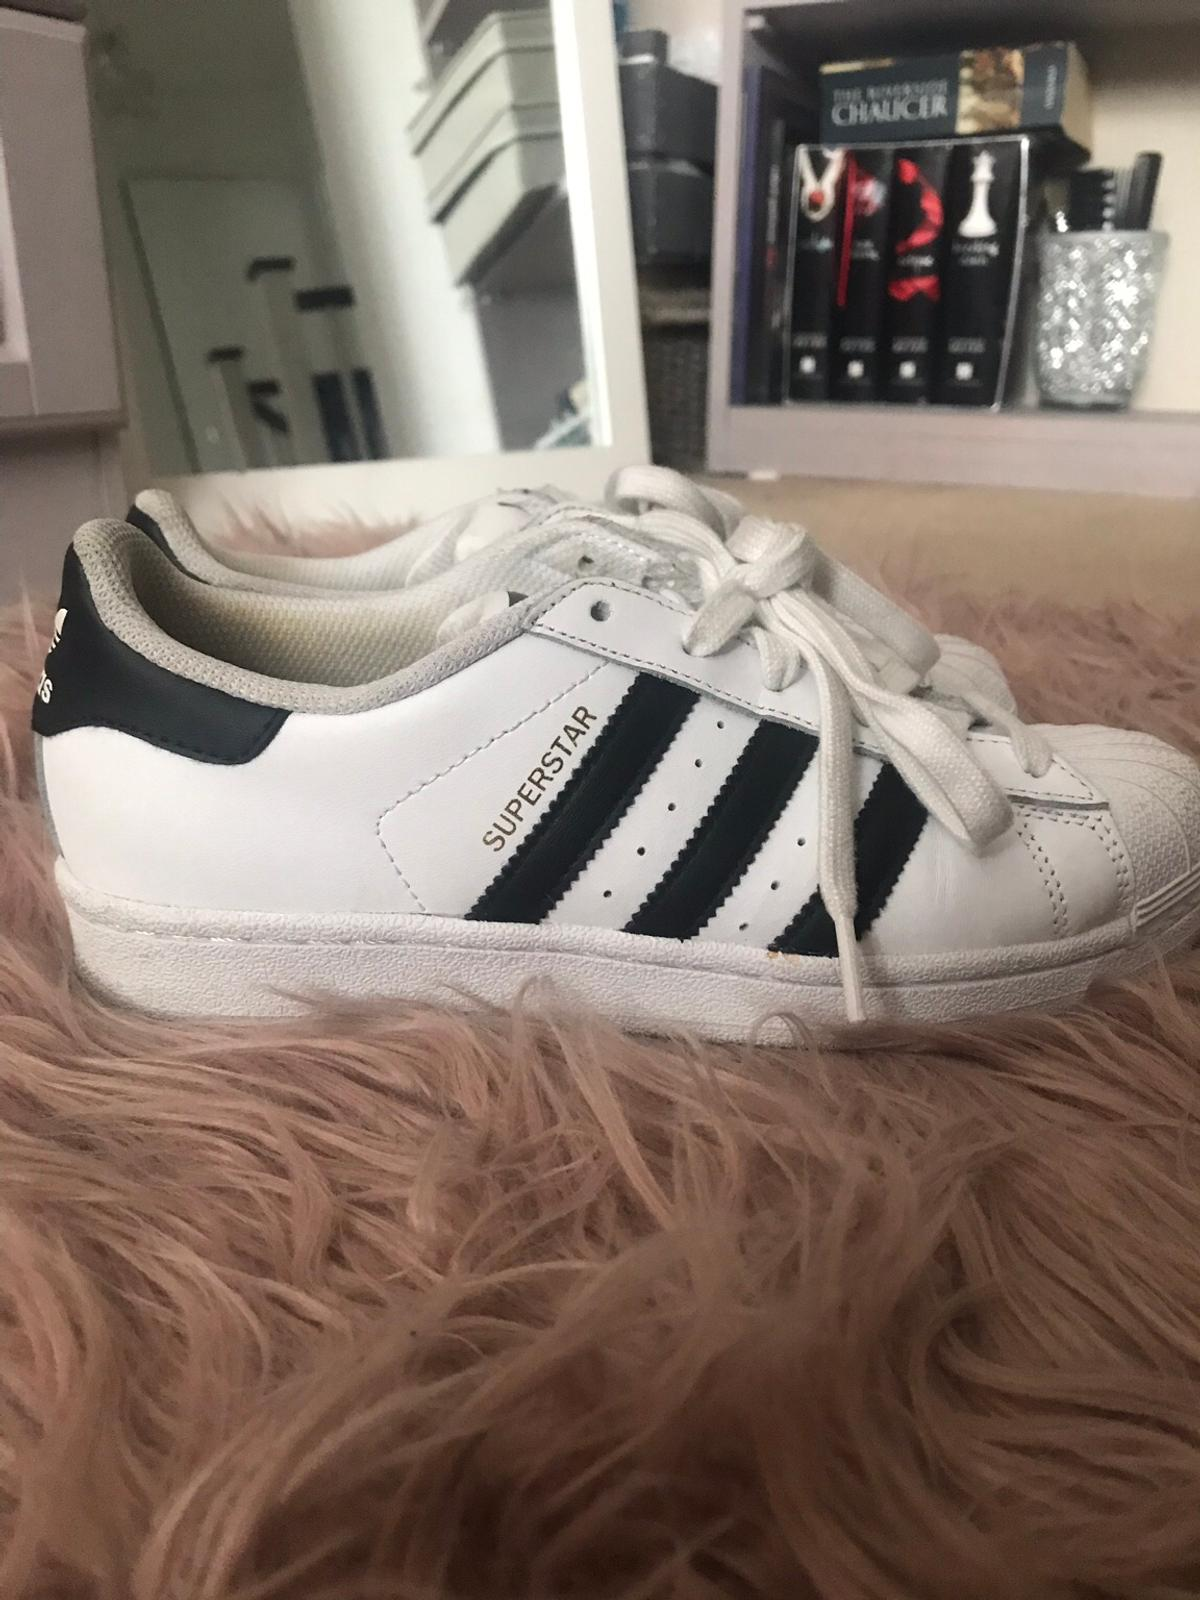 low priced aea56 42d34 Adidas Superstar trainers Size 4 in E14 Hamlets for £12.00 ...